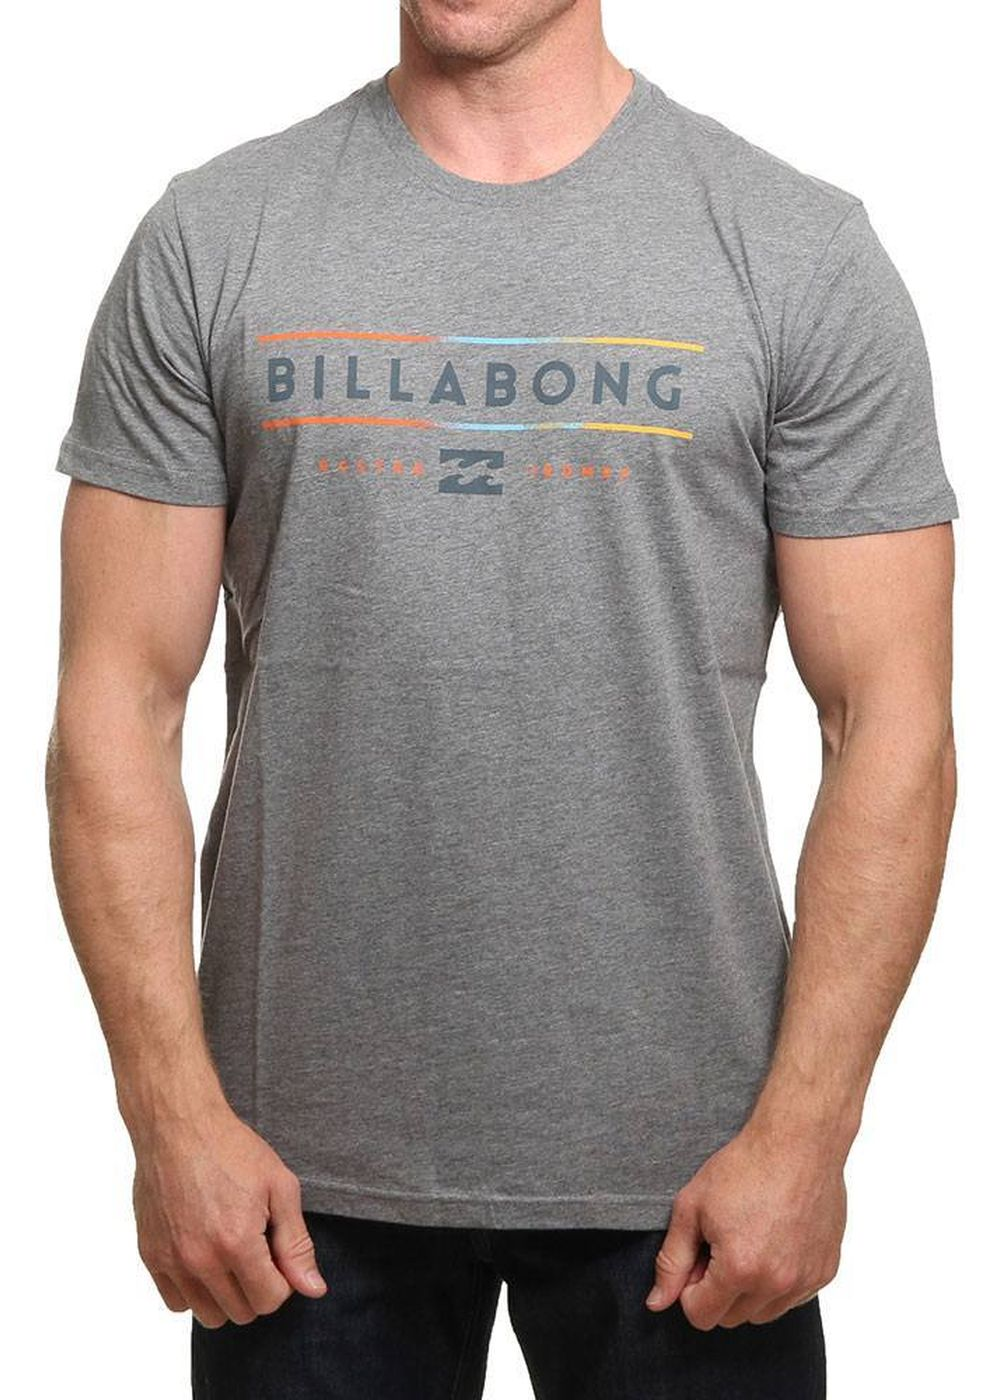 billabong-dual-unity-tee-dark-grey-heather